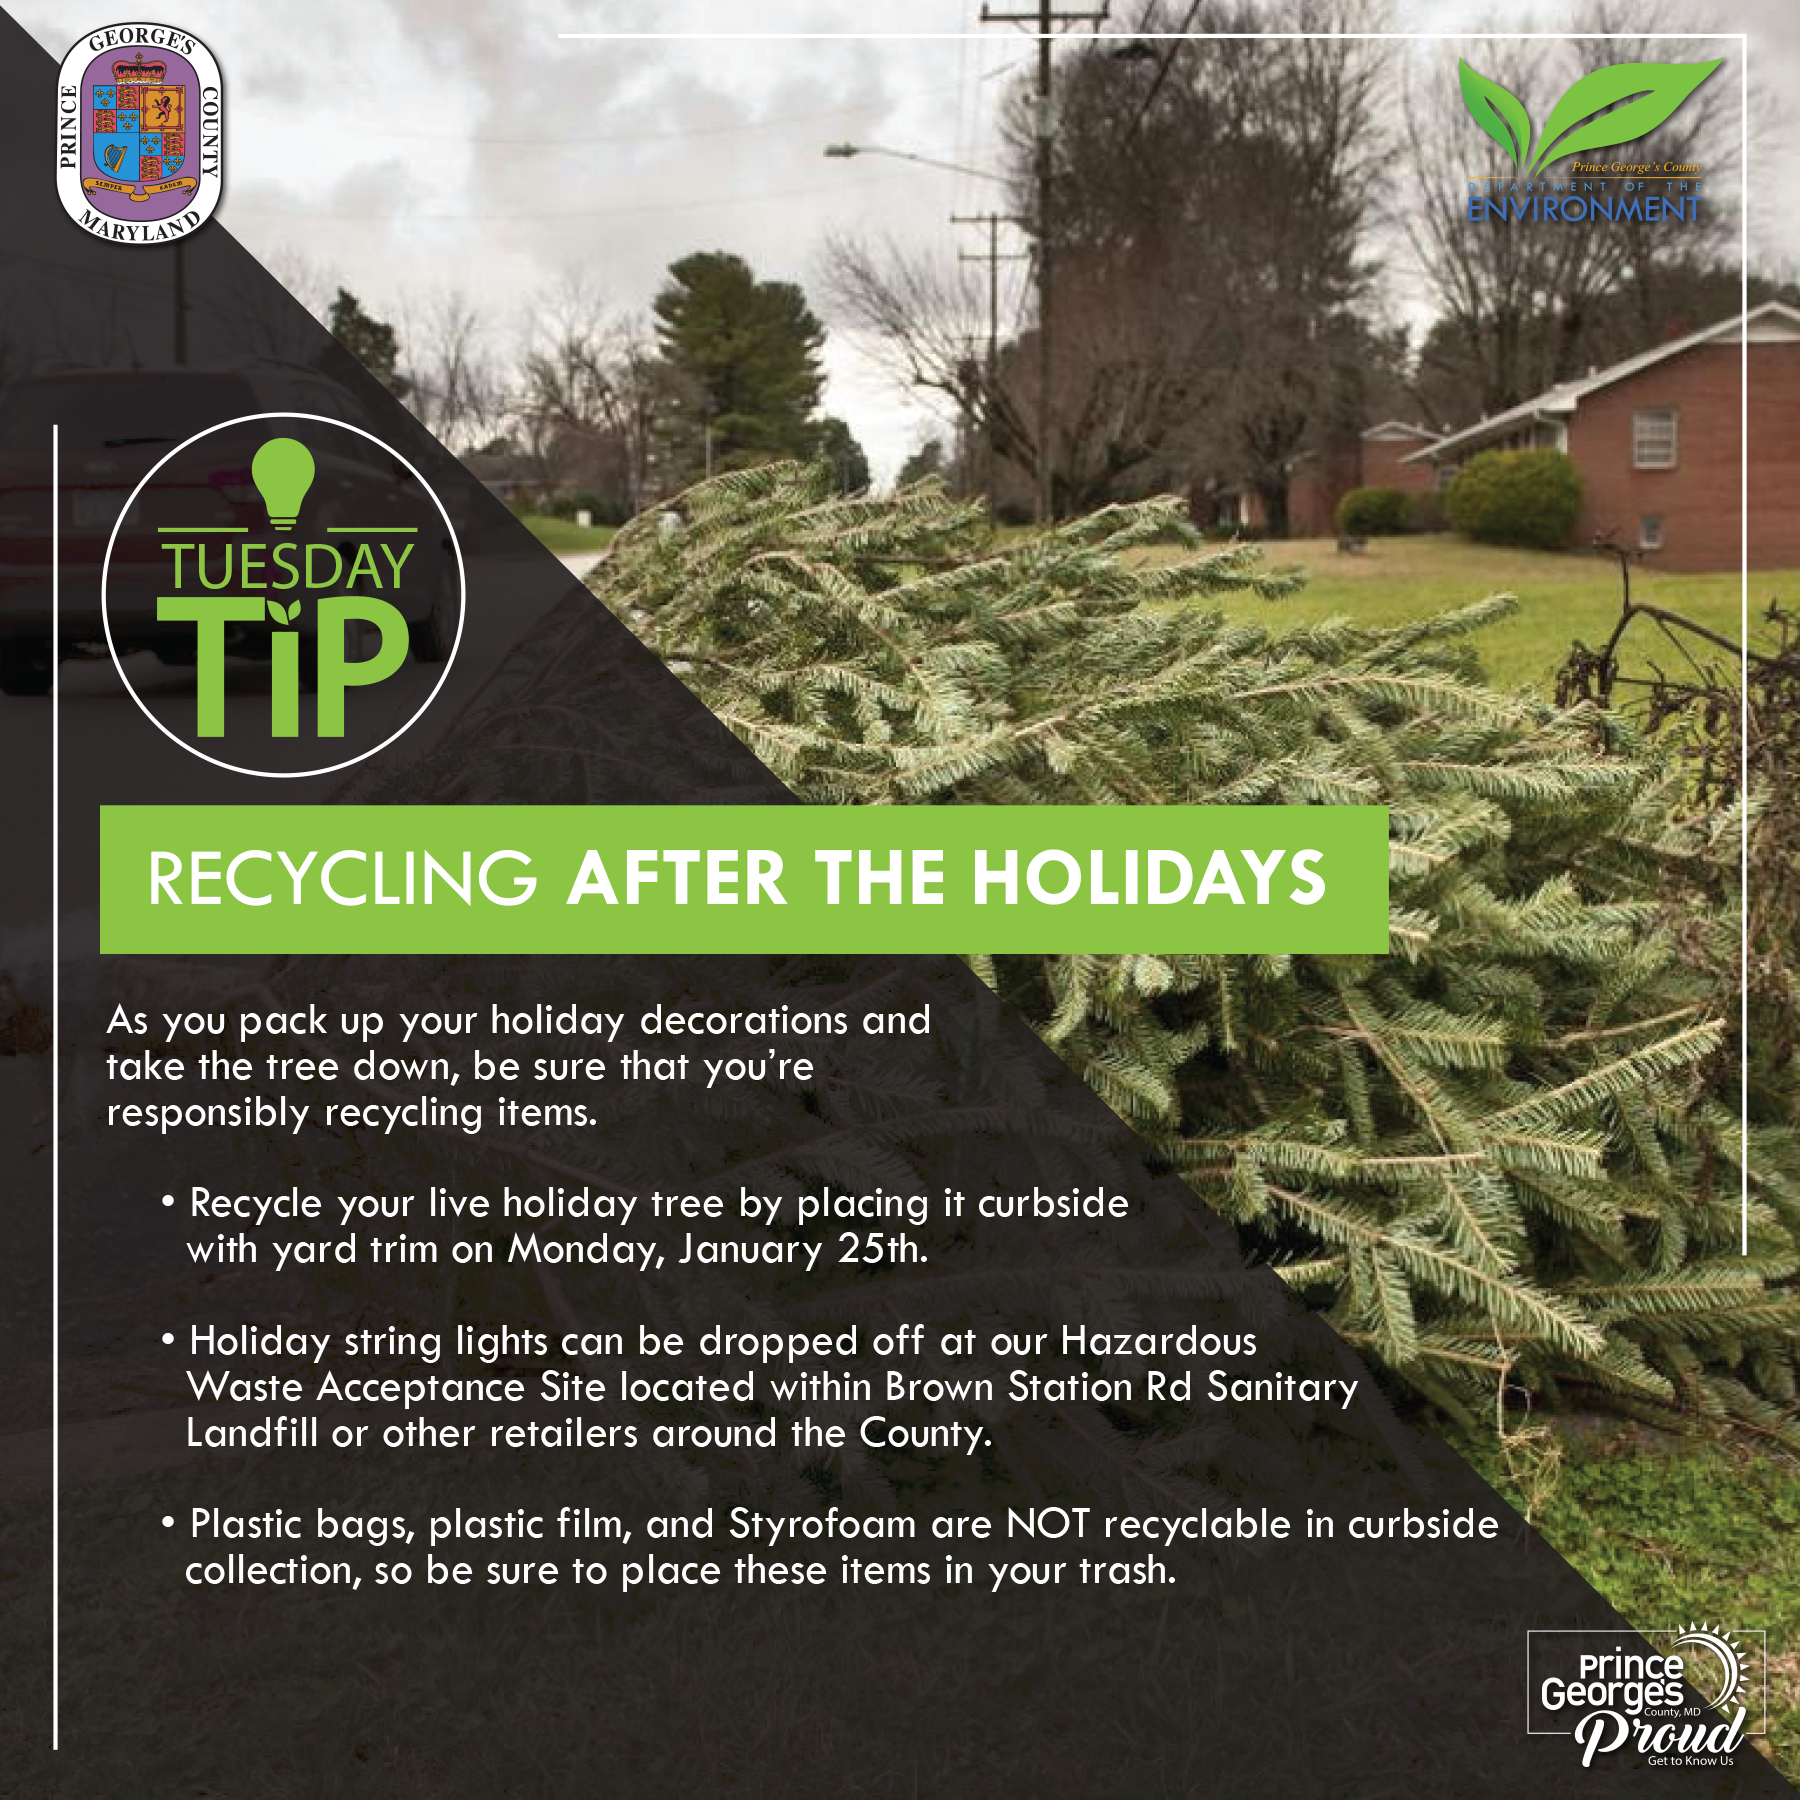 Tues tip 1.19.21 Recycling after holidays eng